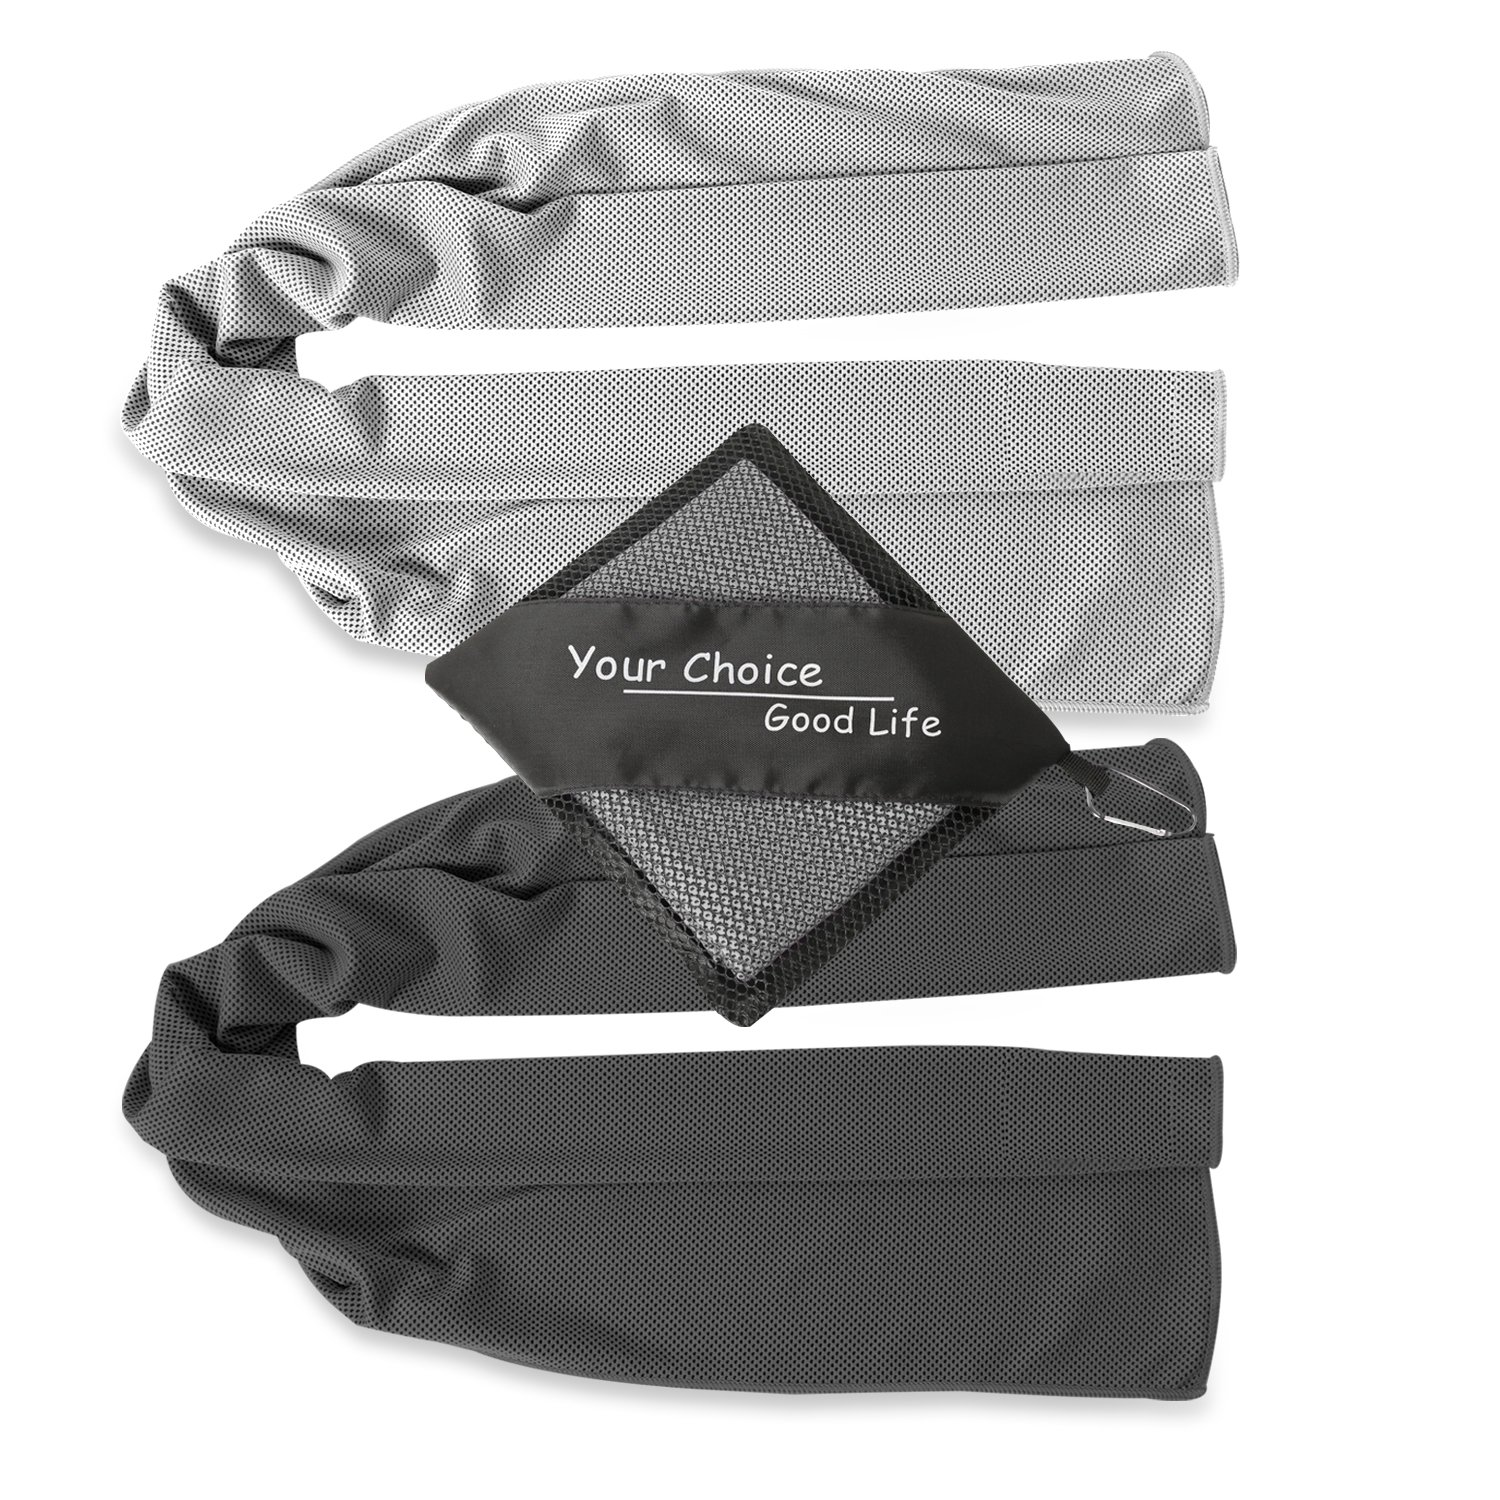 Your Choice Cooling Towels - 2 Pack Cooling Neck Towel for Golf Athletes - Ice Cold Snap Cool Towels - Great Gift for Men Golfers - Gray and Black 12 x 40 Inch